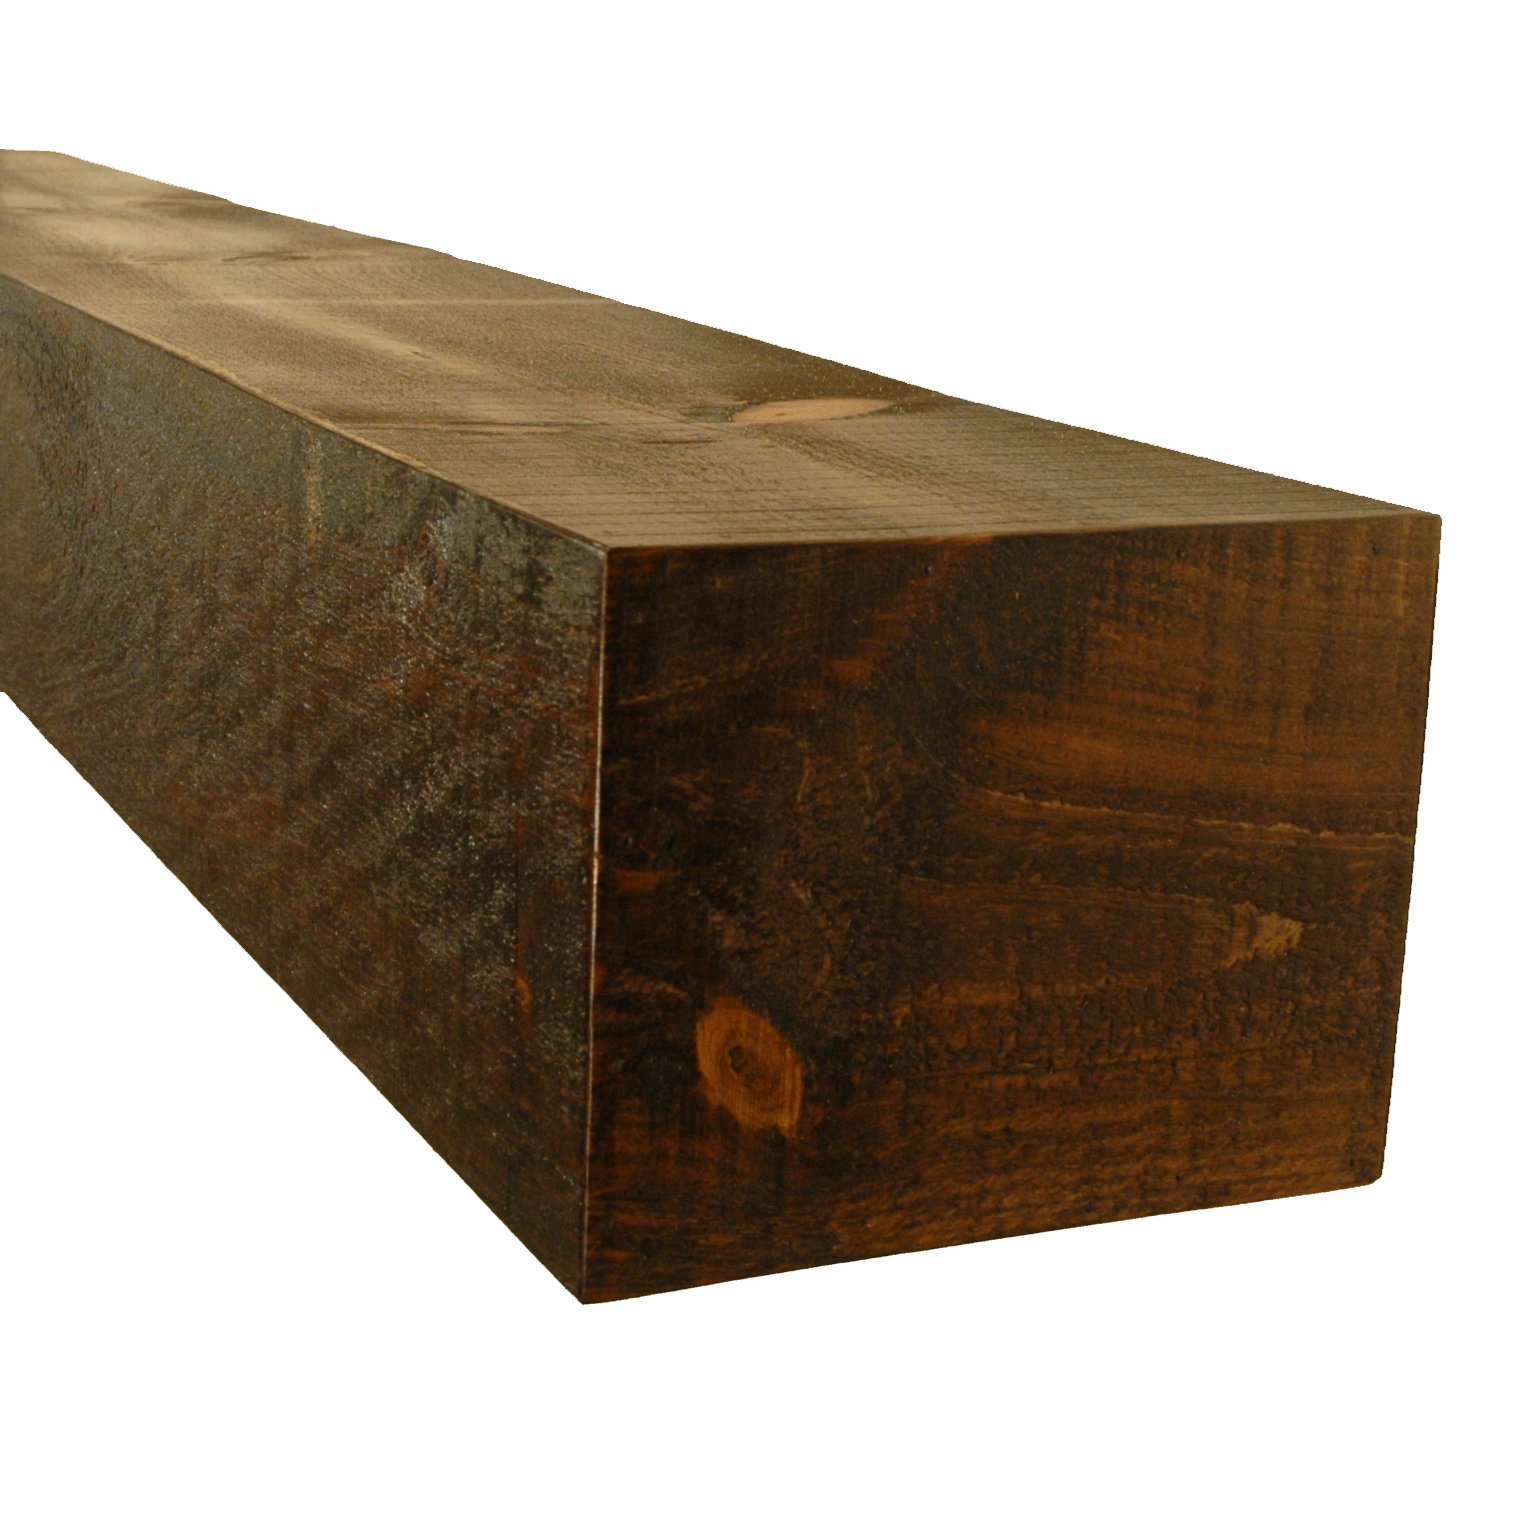 New England Classic 10'' Deep x 72'' Long Appalachian Rustic Wood Mantel Shelf in Antique Brown by New England Classic